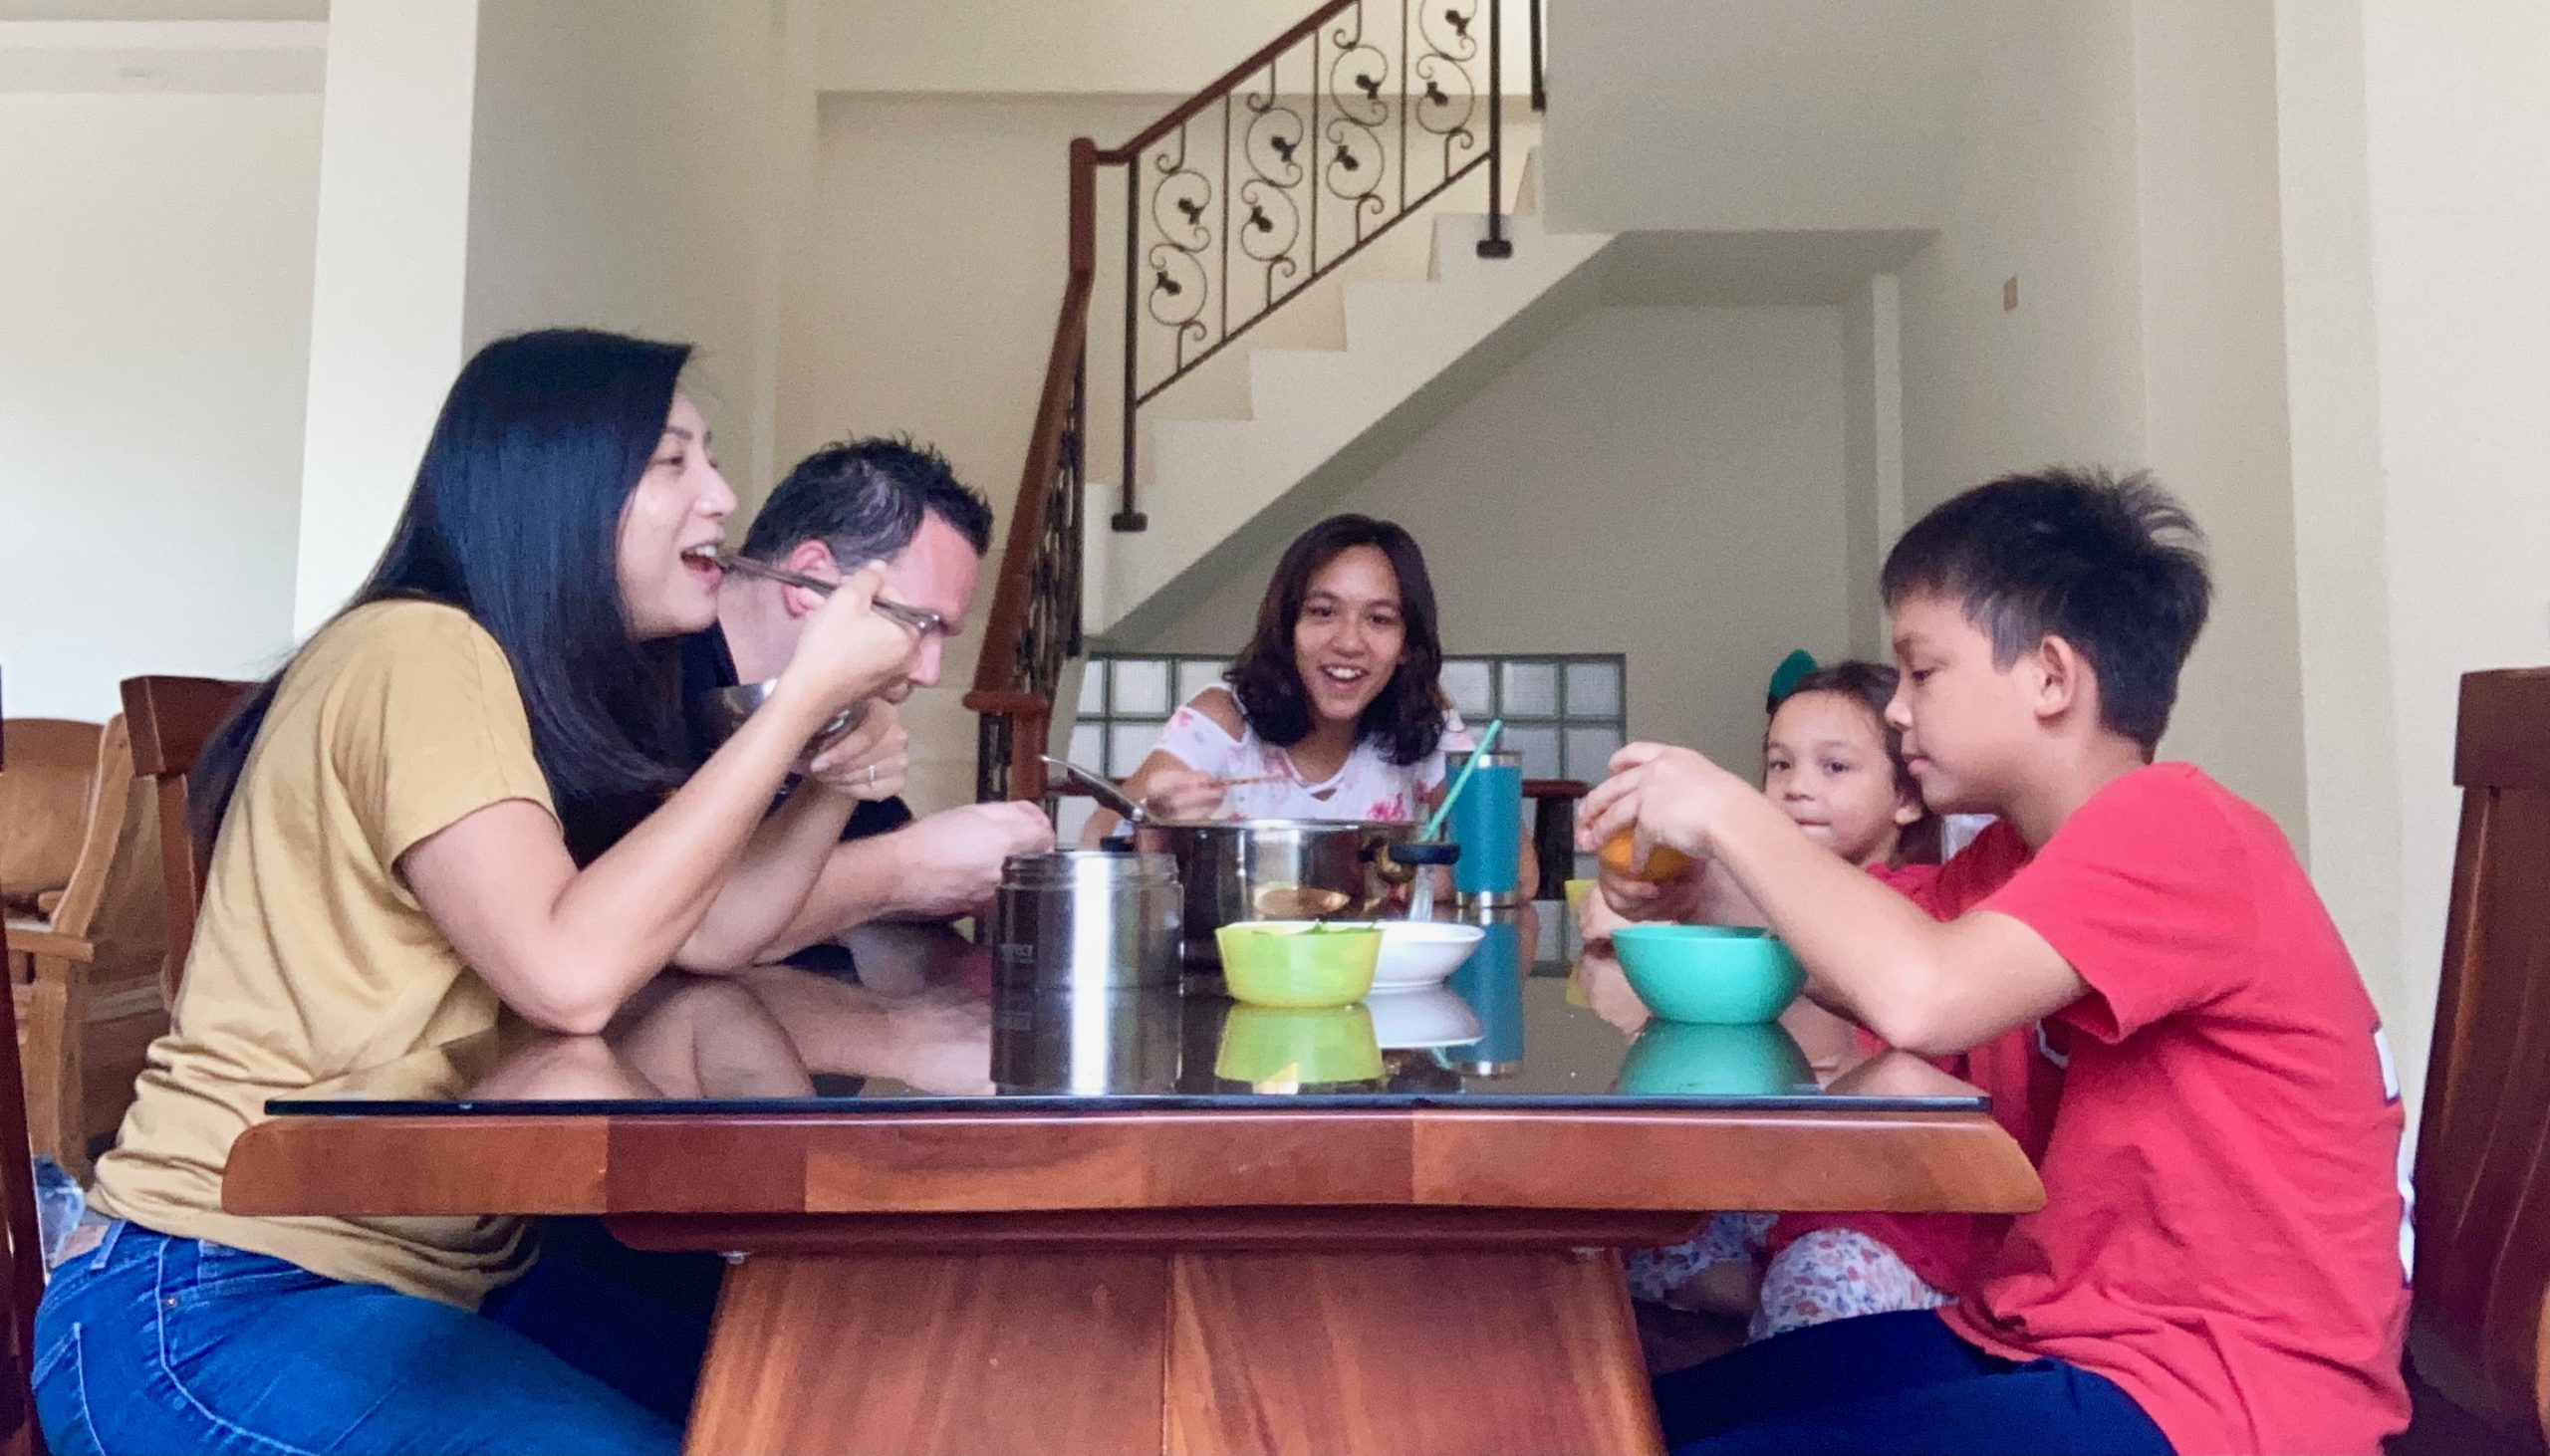 Family of 5 sitting around a table eating